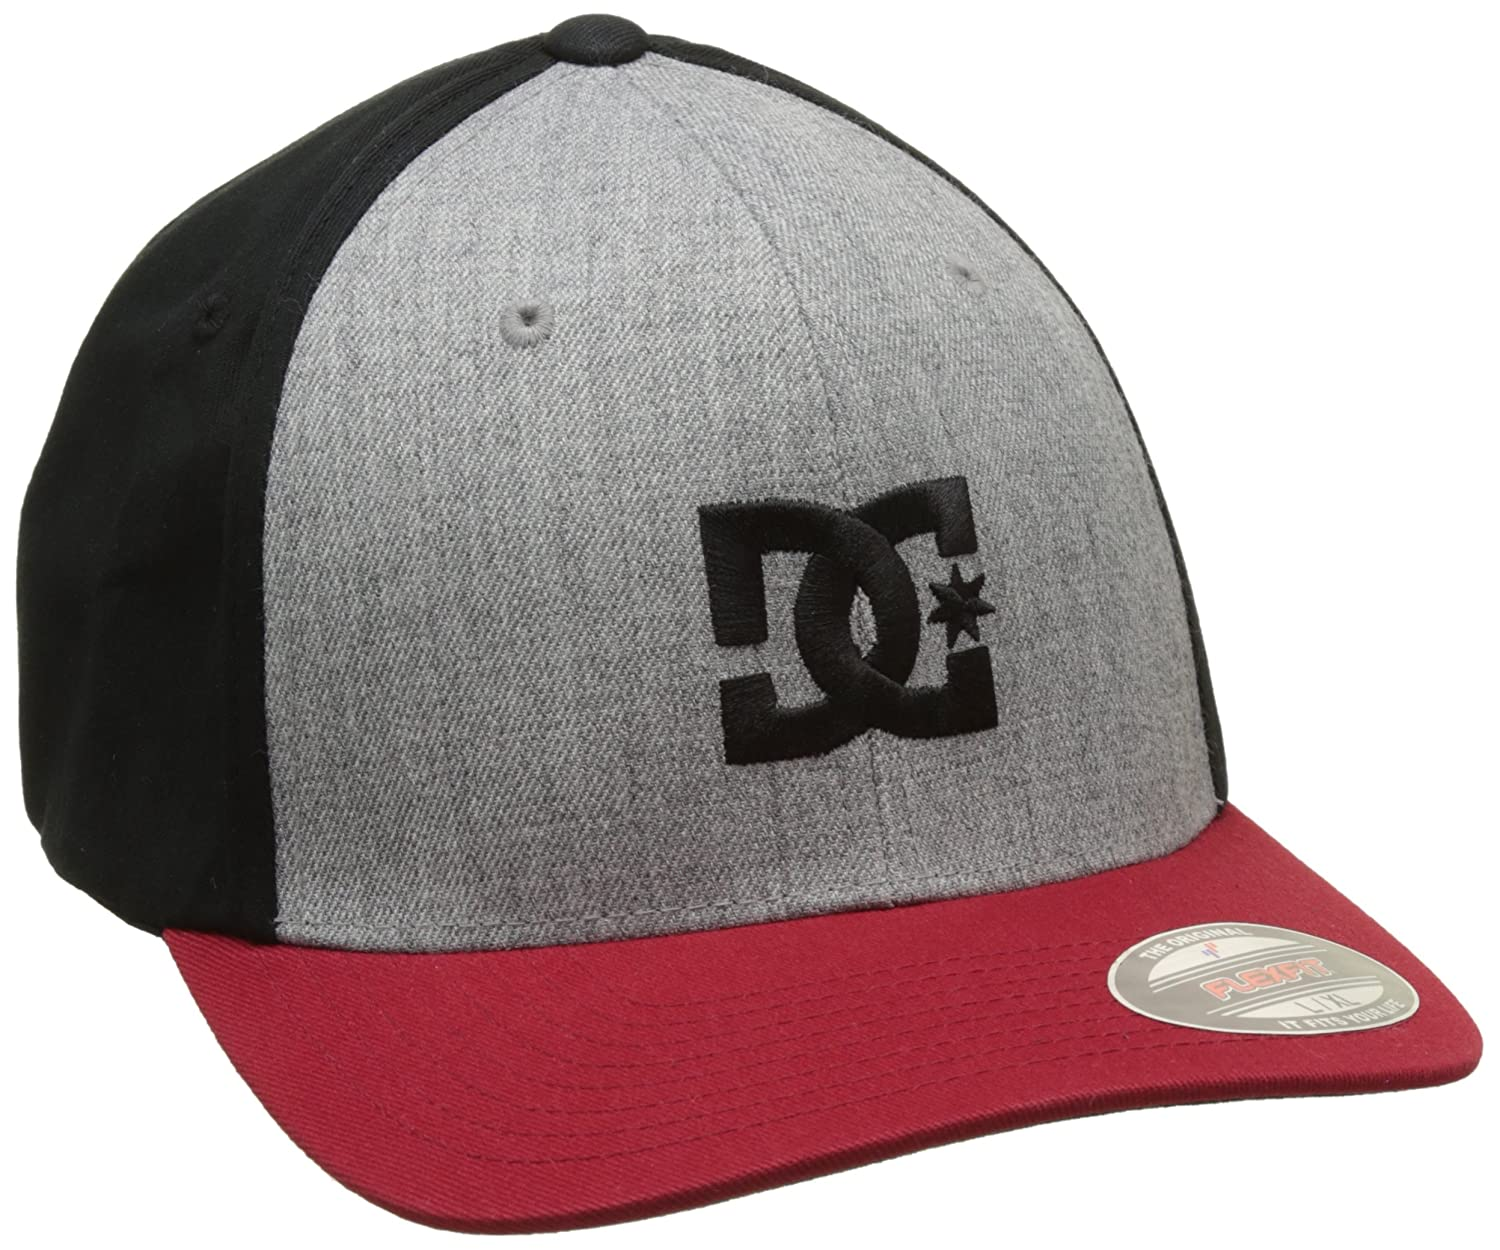 DC Shoes Cap Star 2 Flexfit - Gorra de hombre 55300096  1540970135 ... f92014b4b38